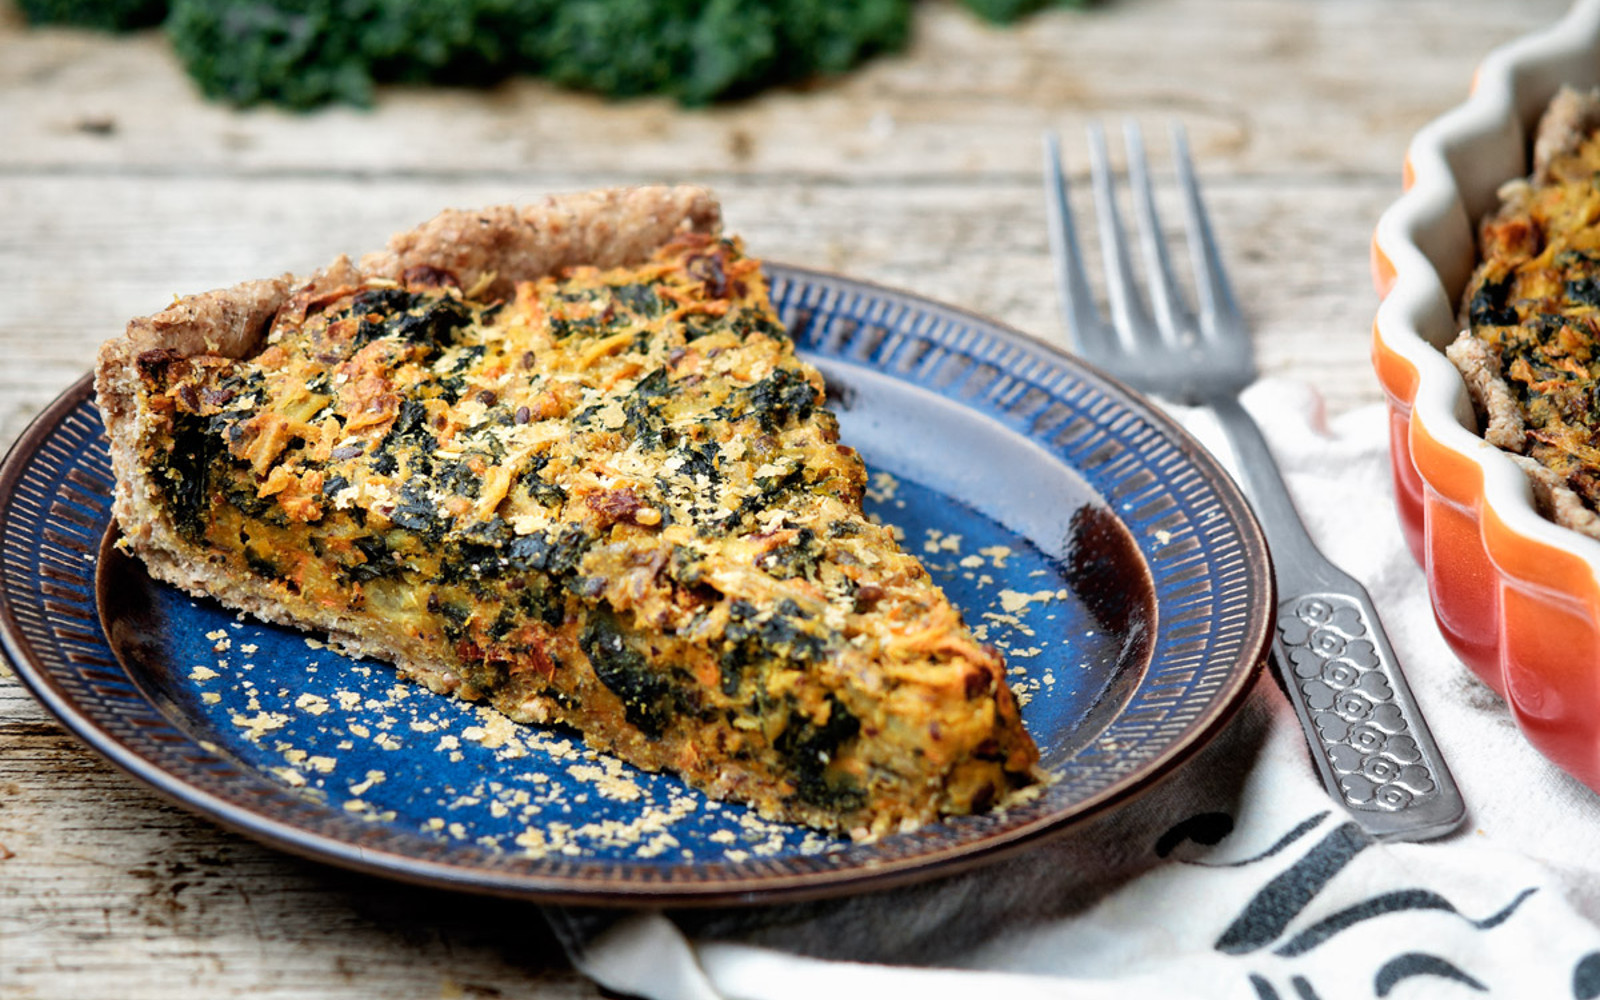 Eggless chickpea and kale quiche